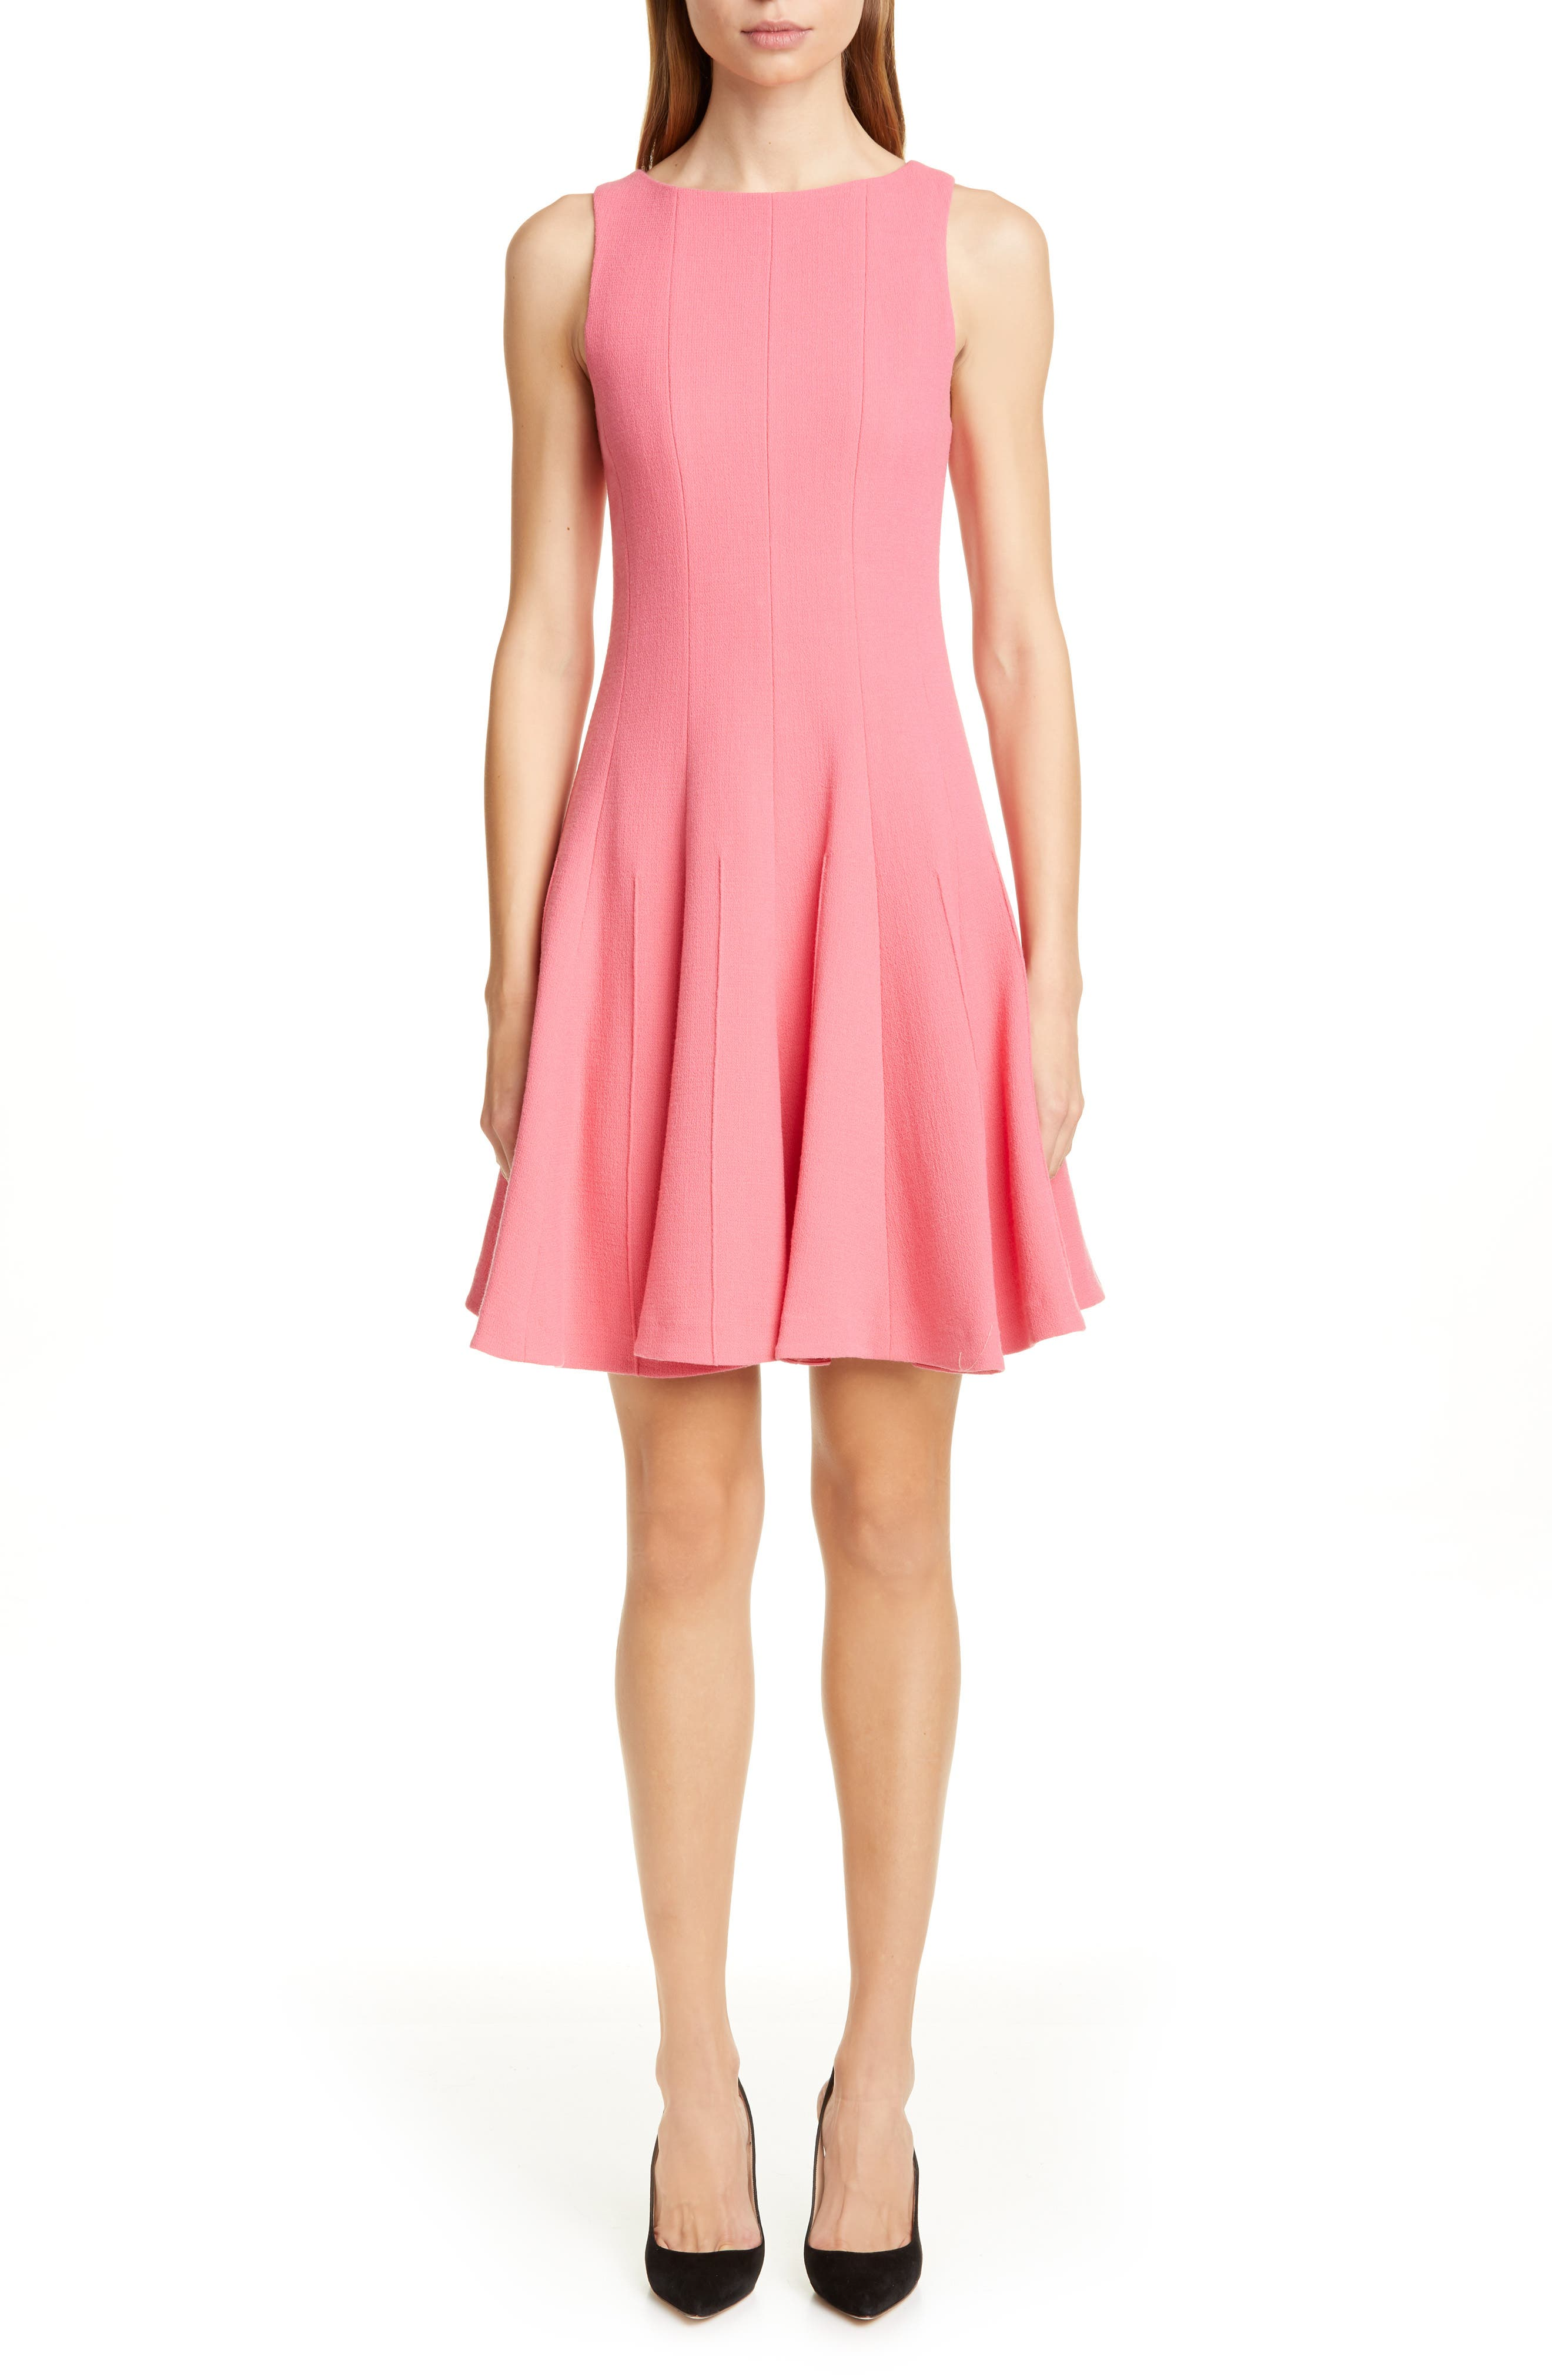 Emporio Armani Wool Crepe Fit & Flare Dress, 50 IT - Red